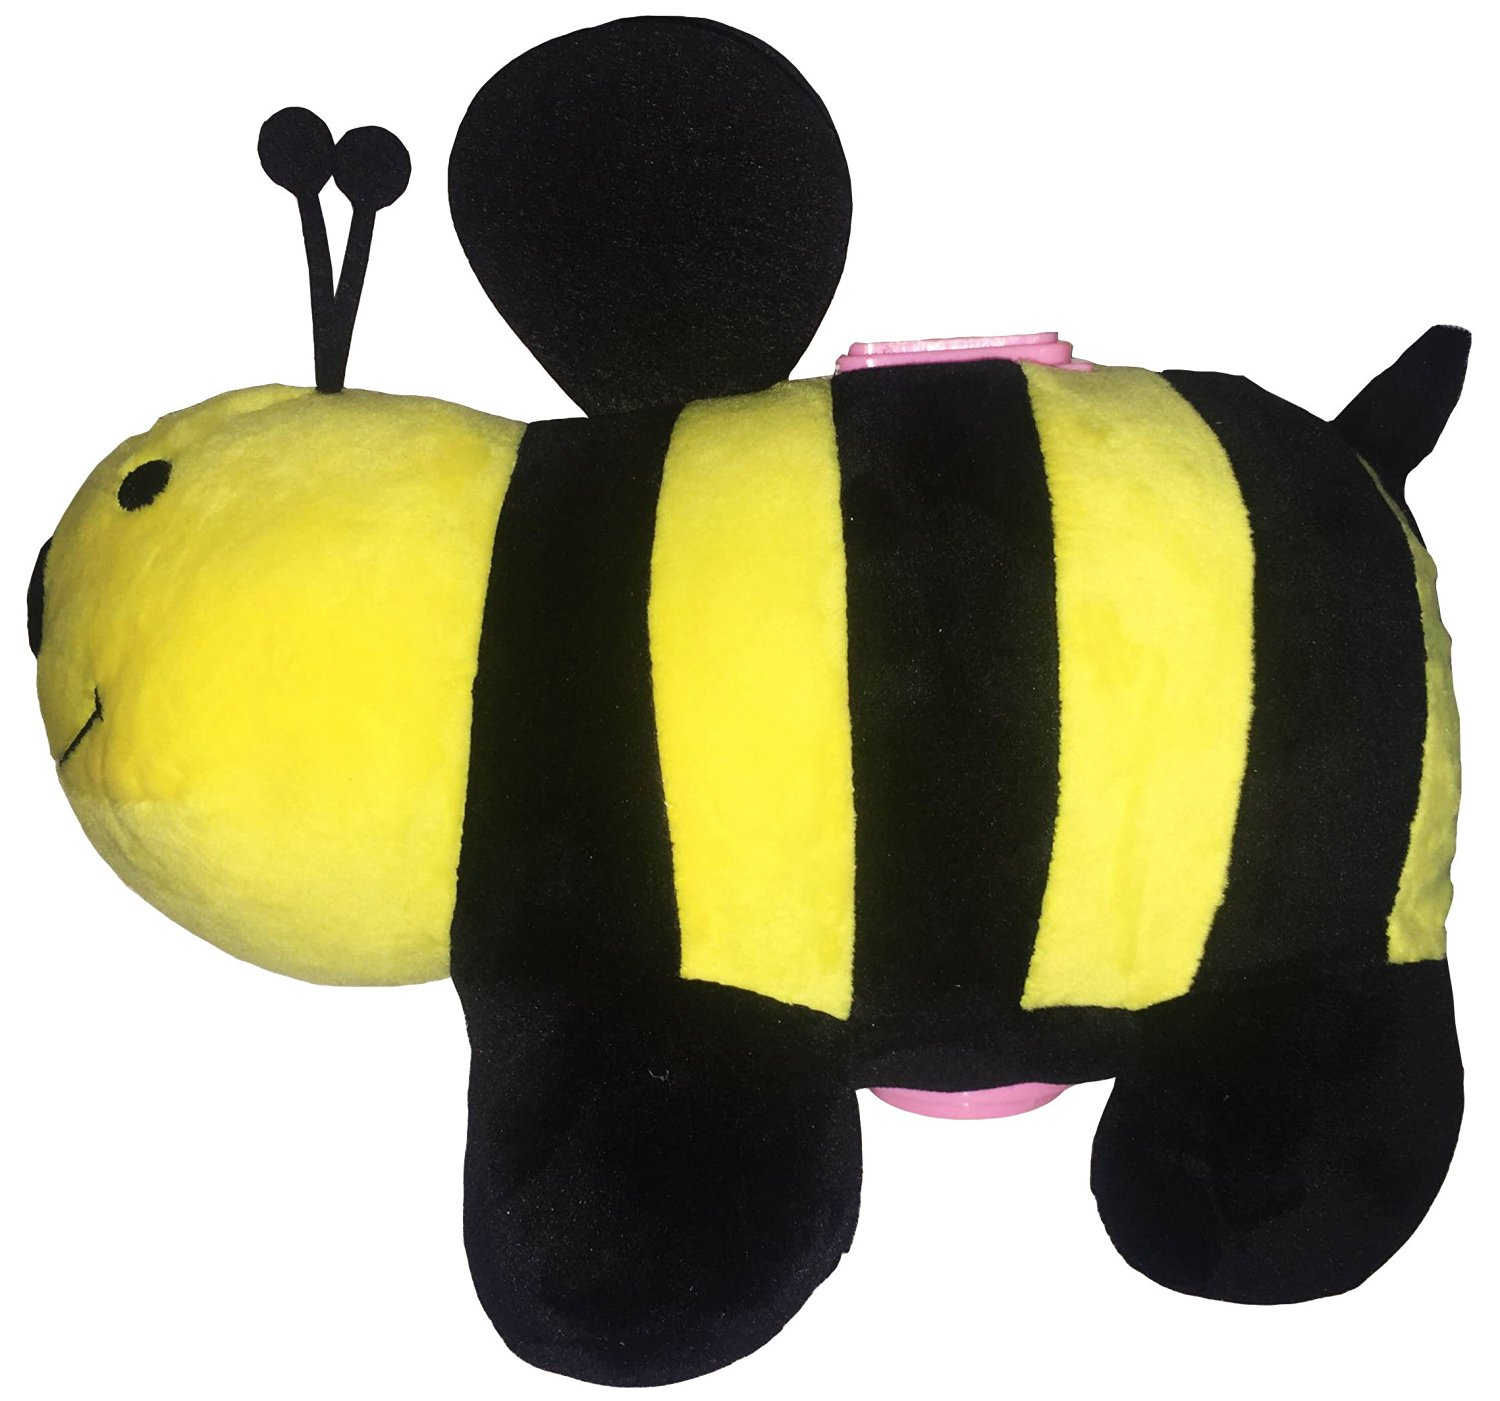 Large Plush Coin Bank by Jungle Class (Bumble Bee) - Piggy Bank for Kids - Animal Toy Bank - Stuffed and Soft Savings Starter - A Cute Toy Coin Collector for Boys and Girls - Other Styles Available